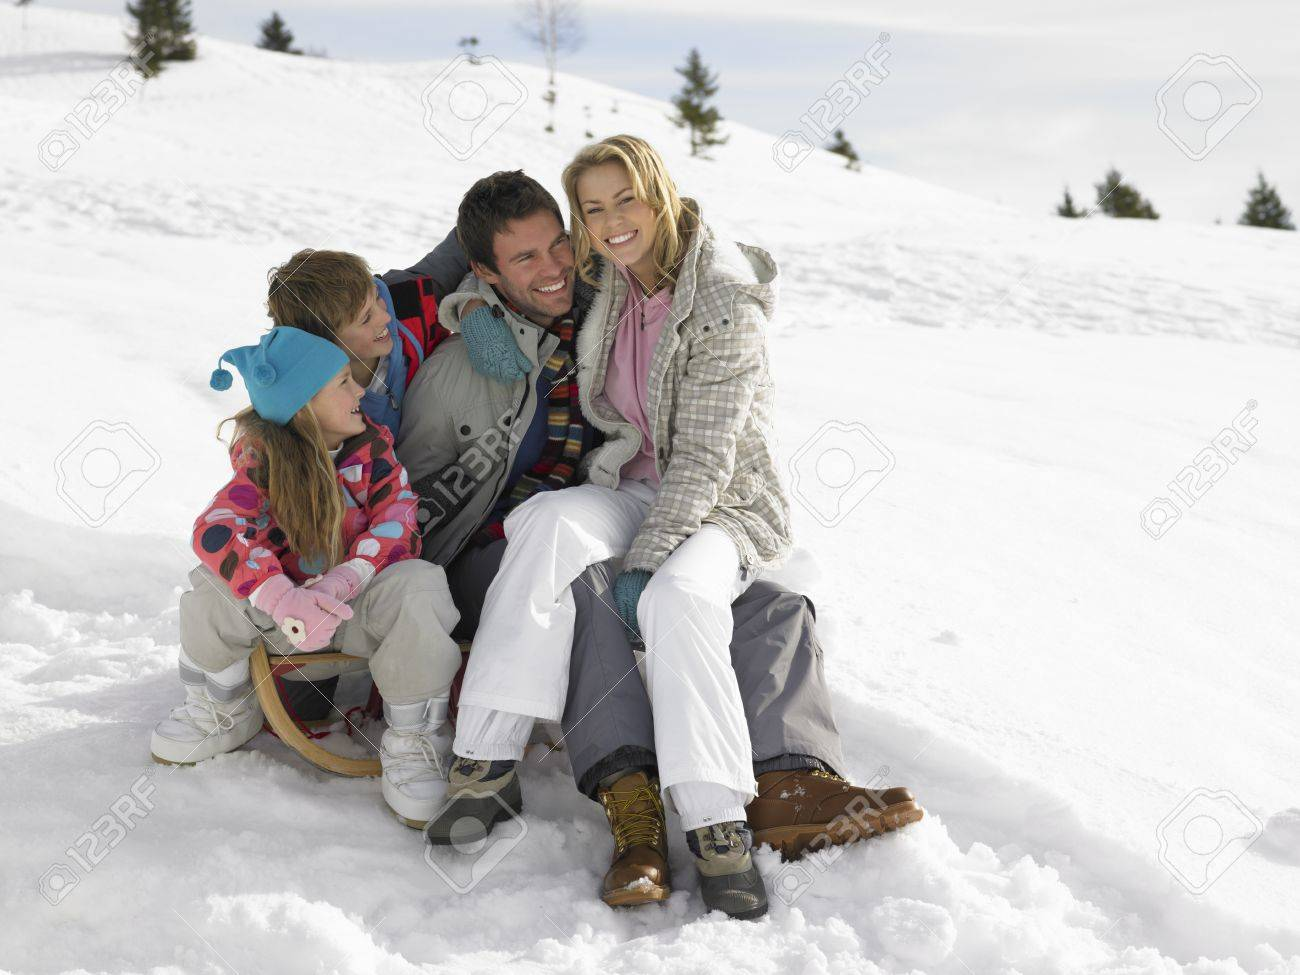 Young Family Sitting On A Sled In The Snow Stock Photo - 11246652